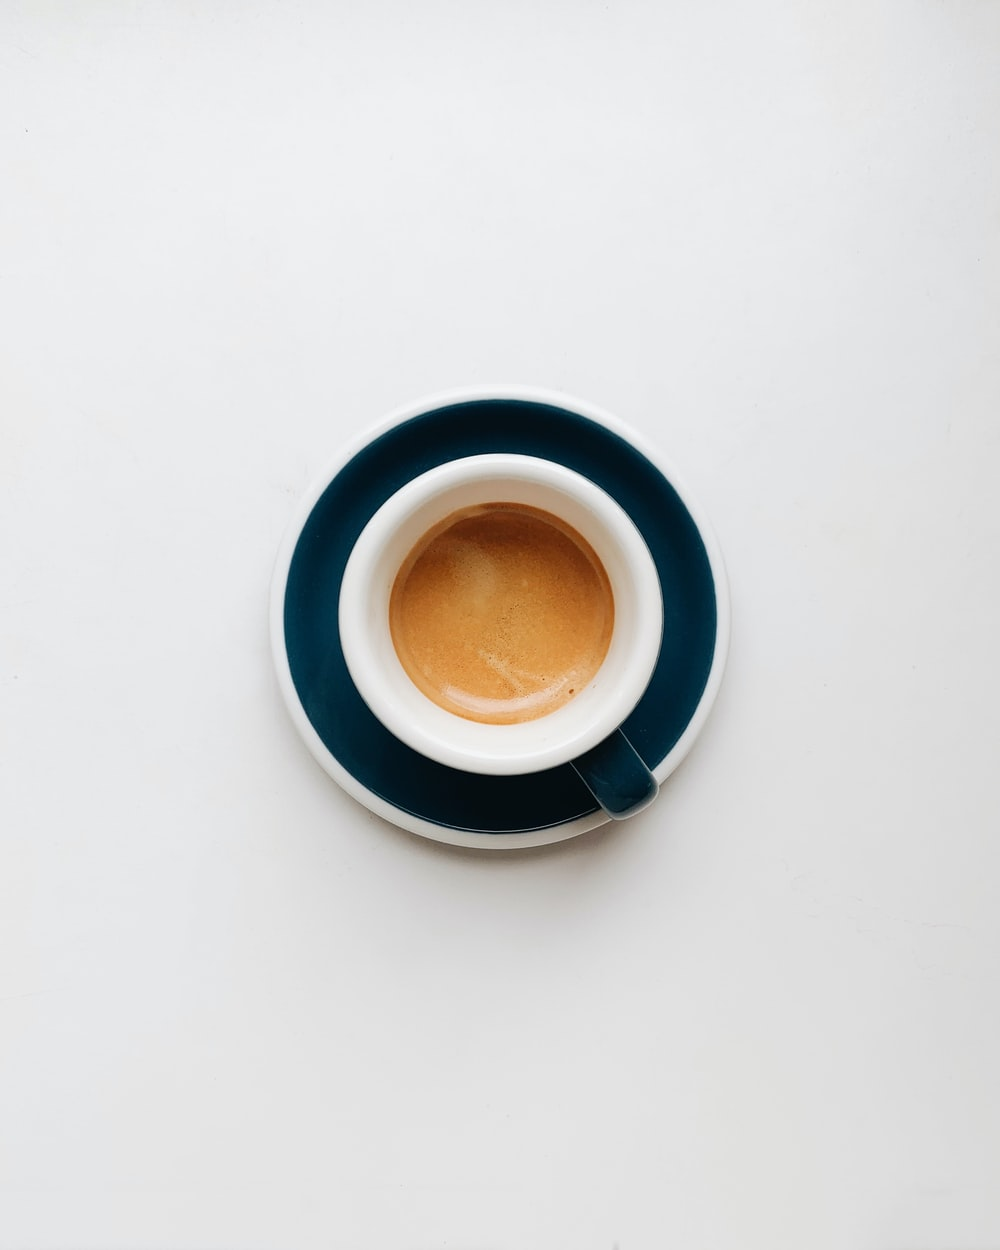 cup of coffee on top of saucer